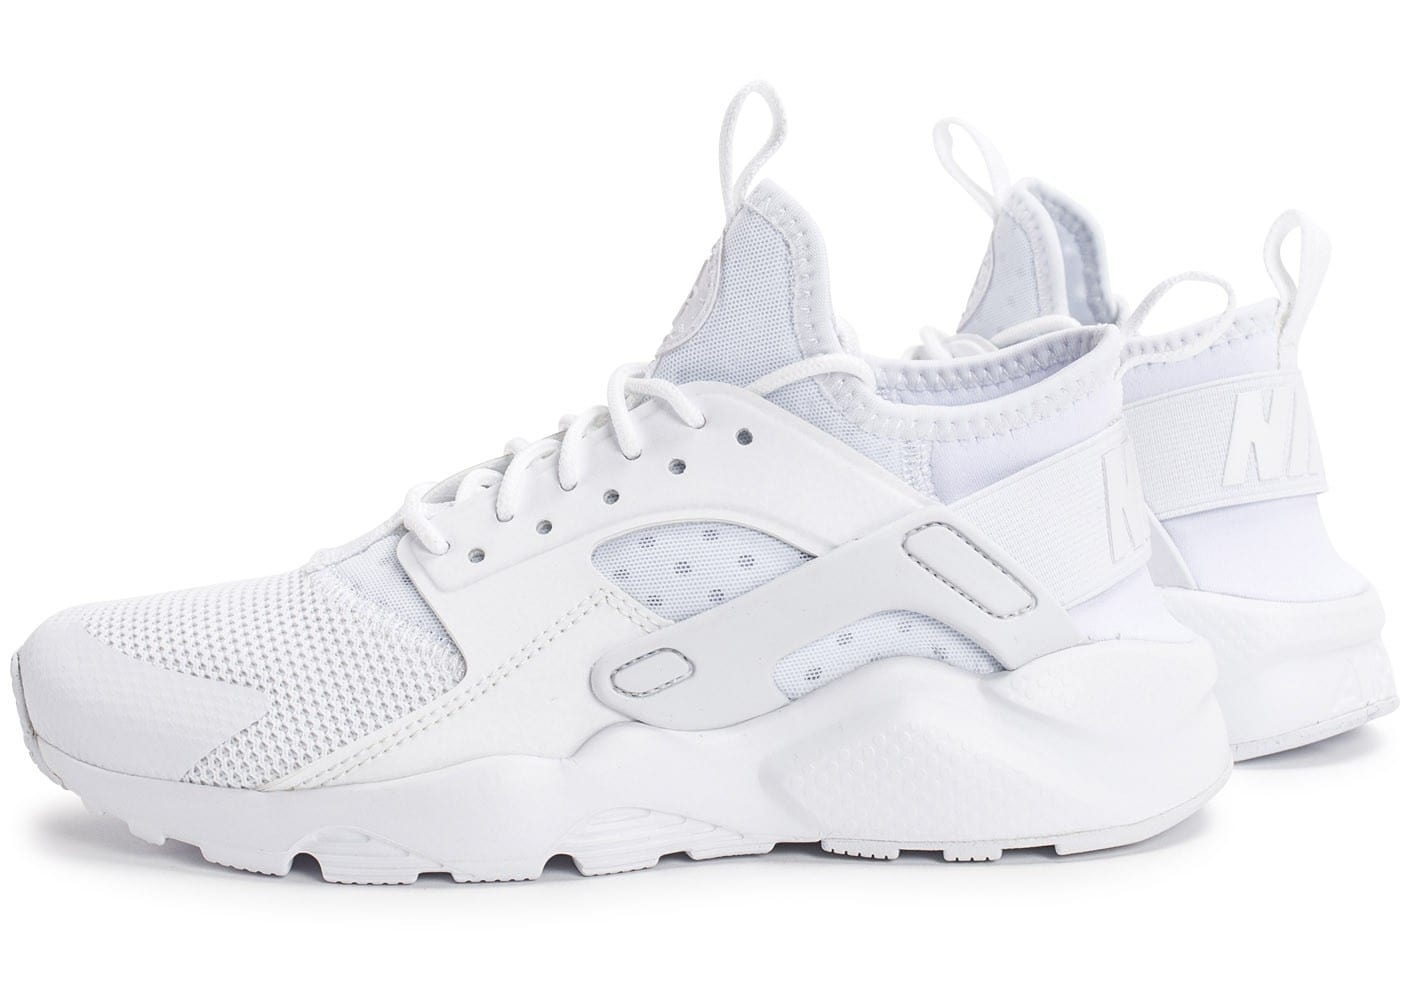 Chaussures Baskets Ultra Run Cool Junior Huarache Air Blanche Nike aqwO00